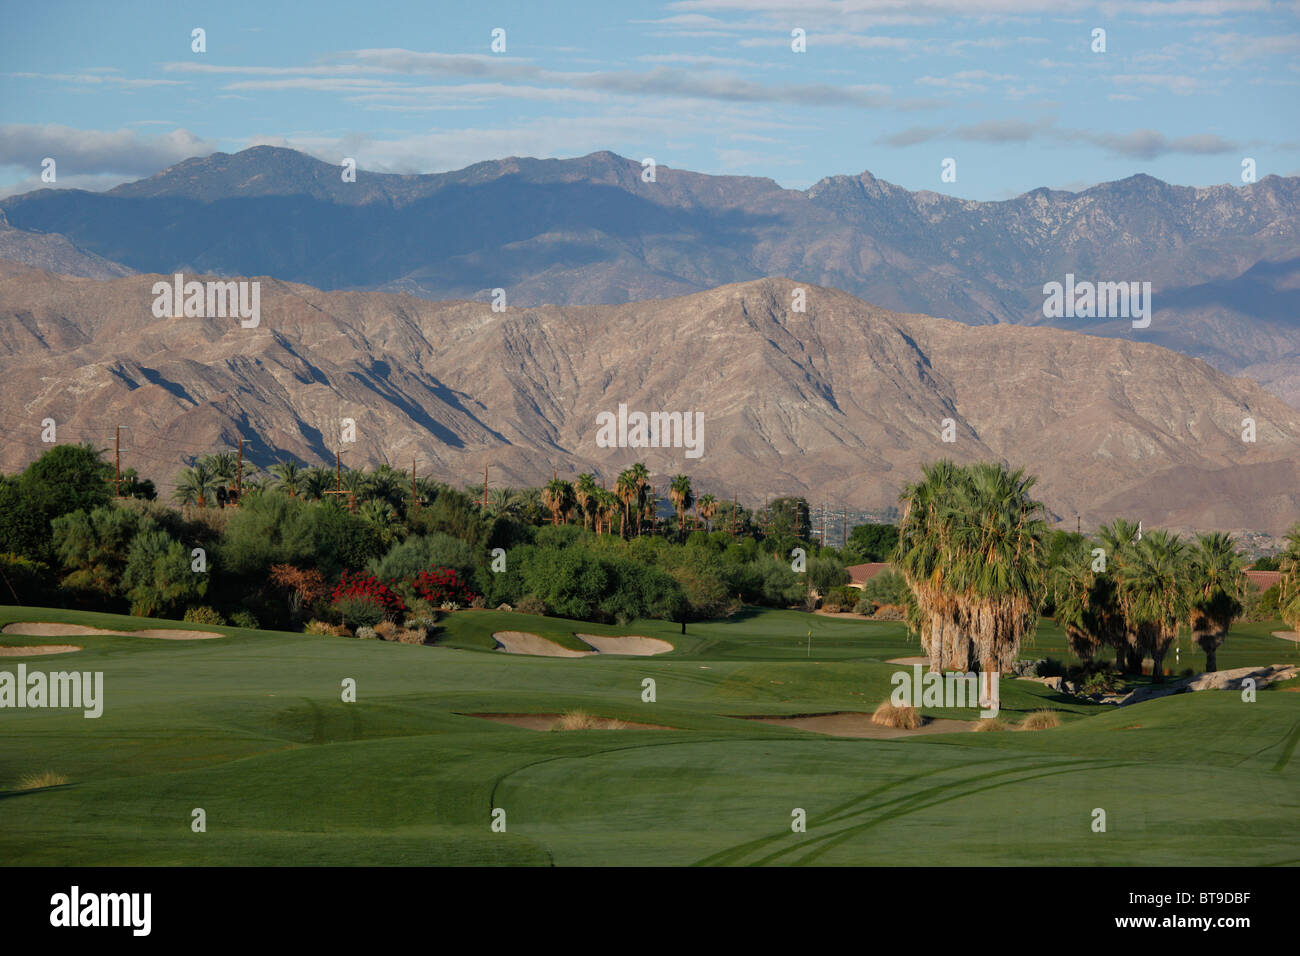 Desert Willow golf course in Palm Desert, California, USA. - Stock Image